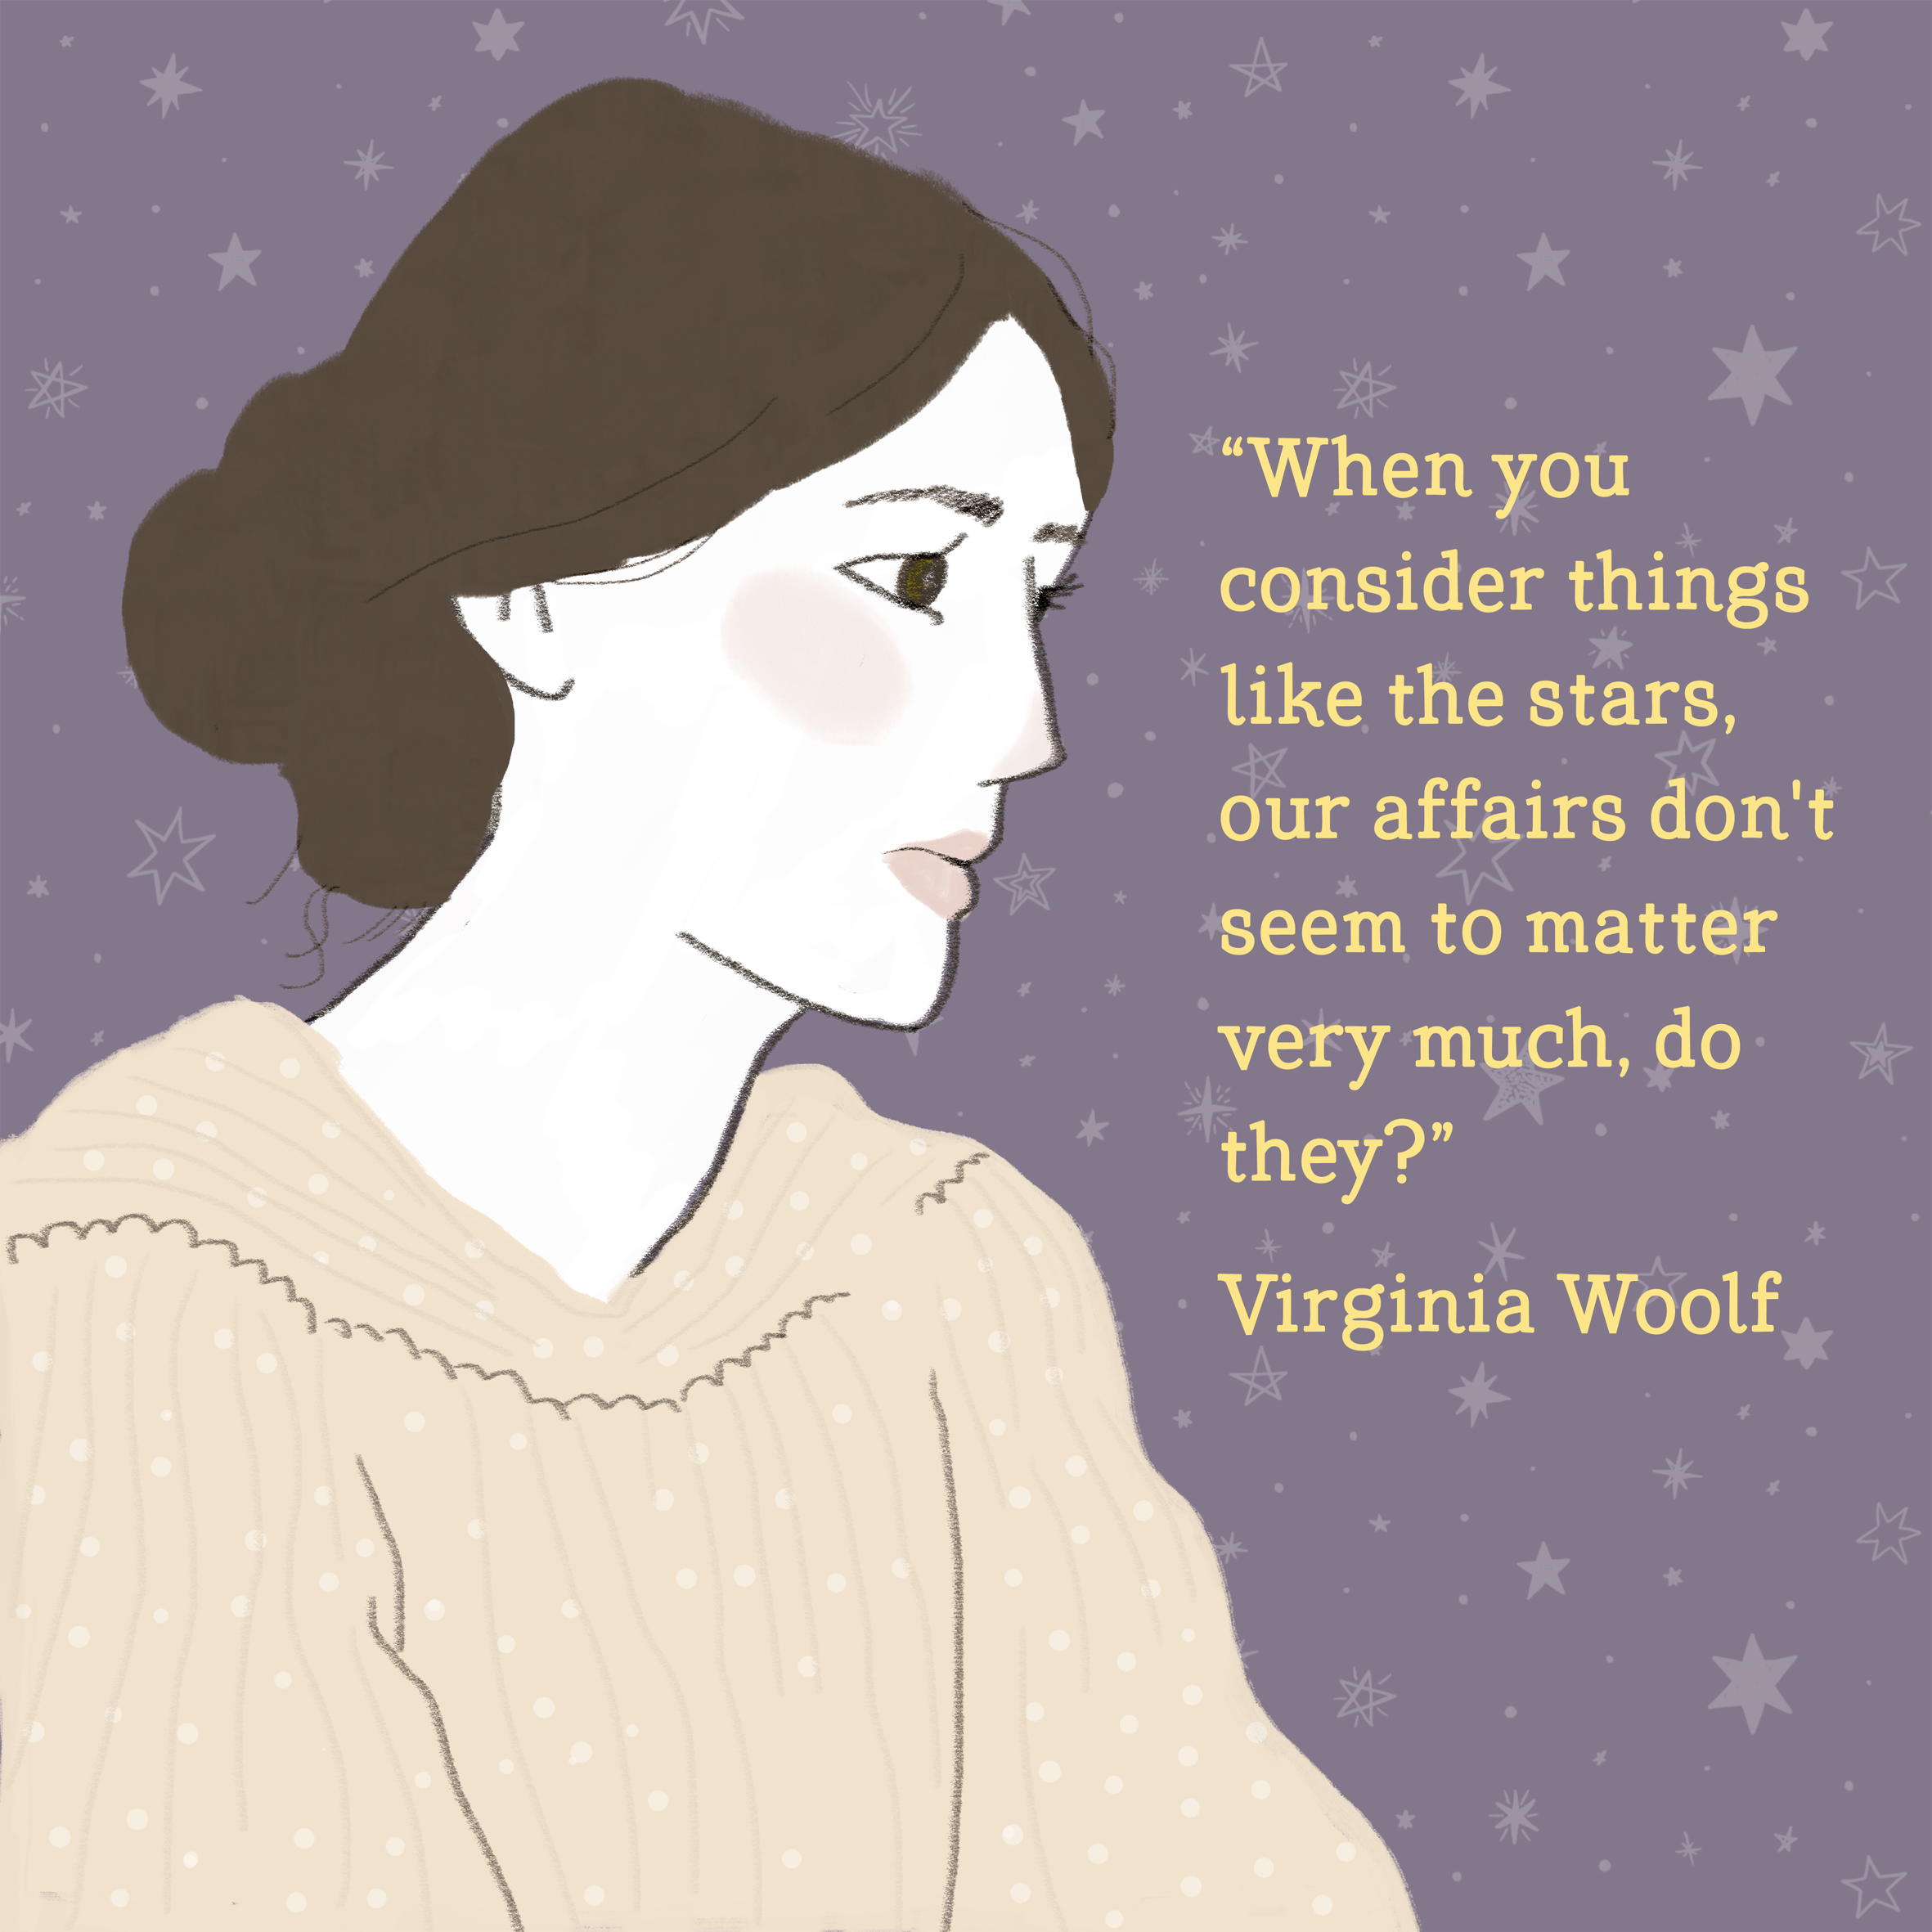 Virginia Woolf Illustration and quote.